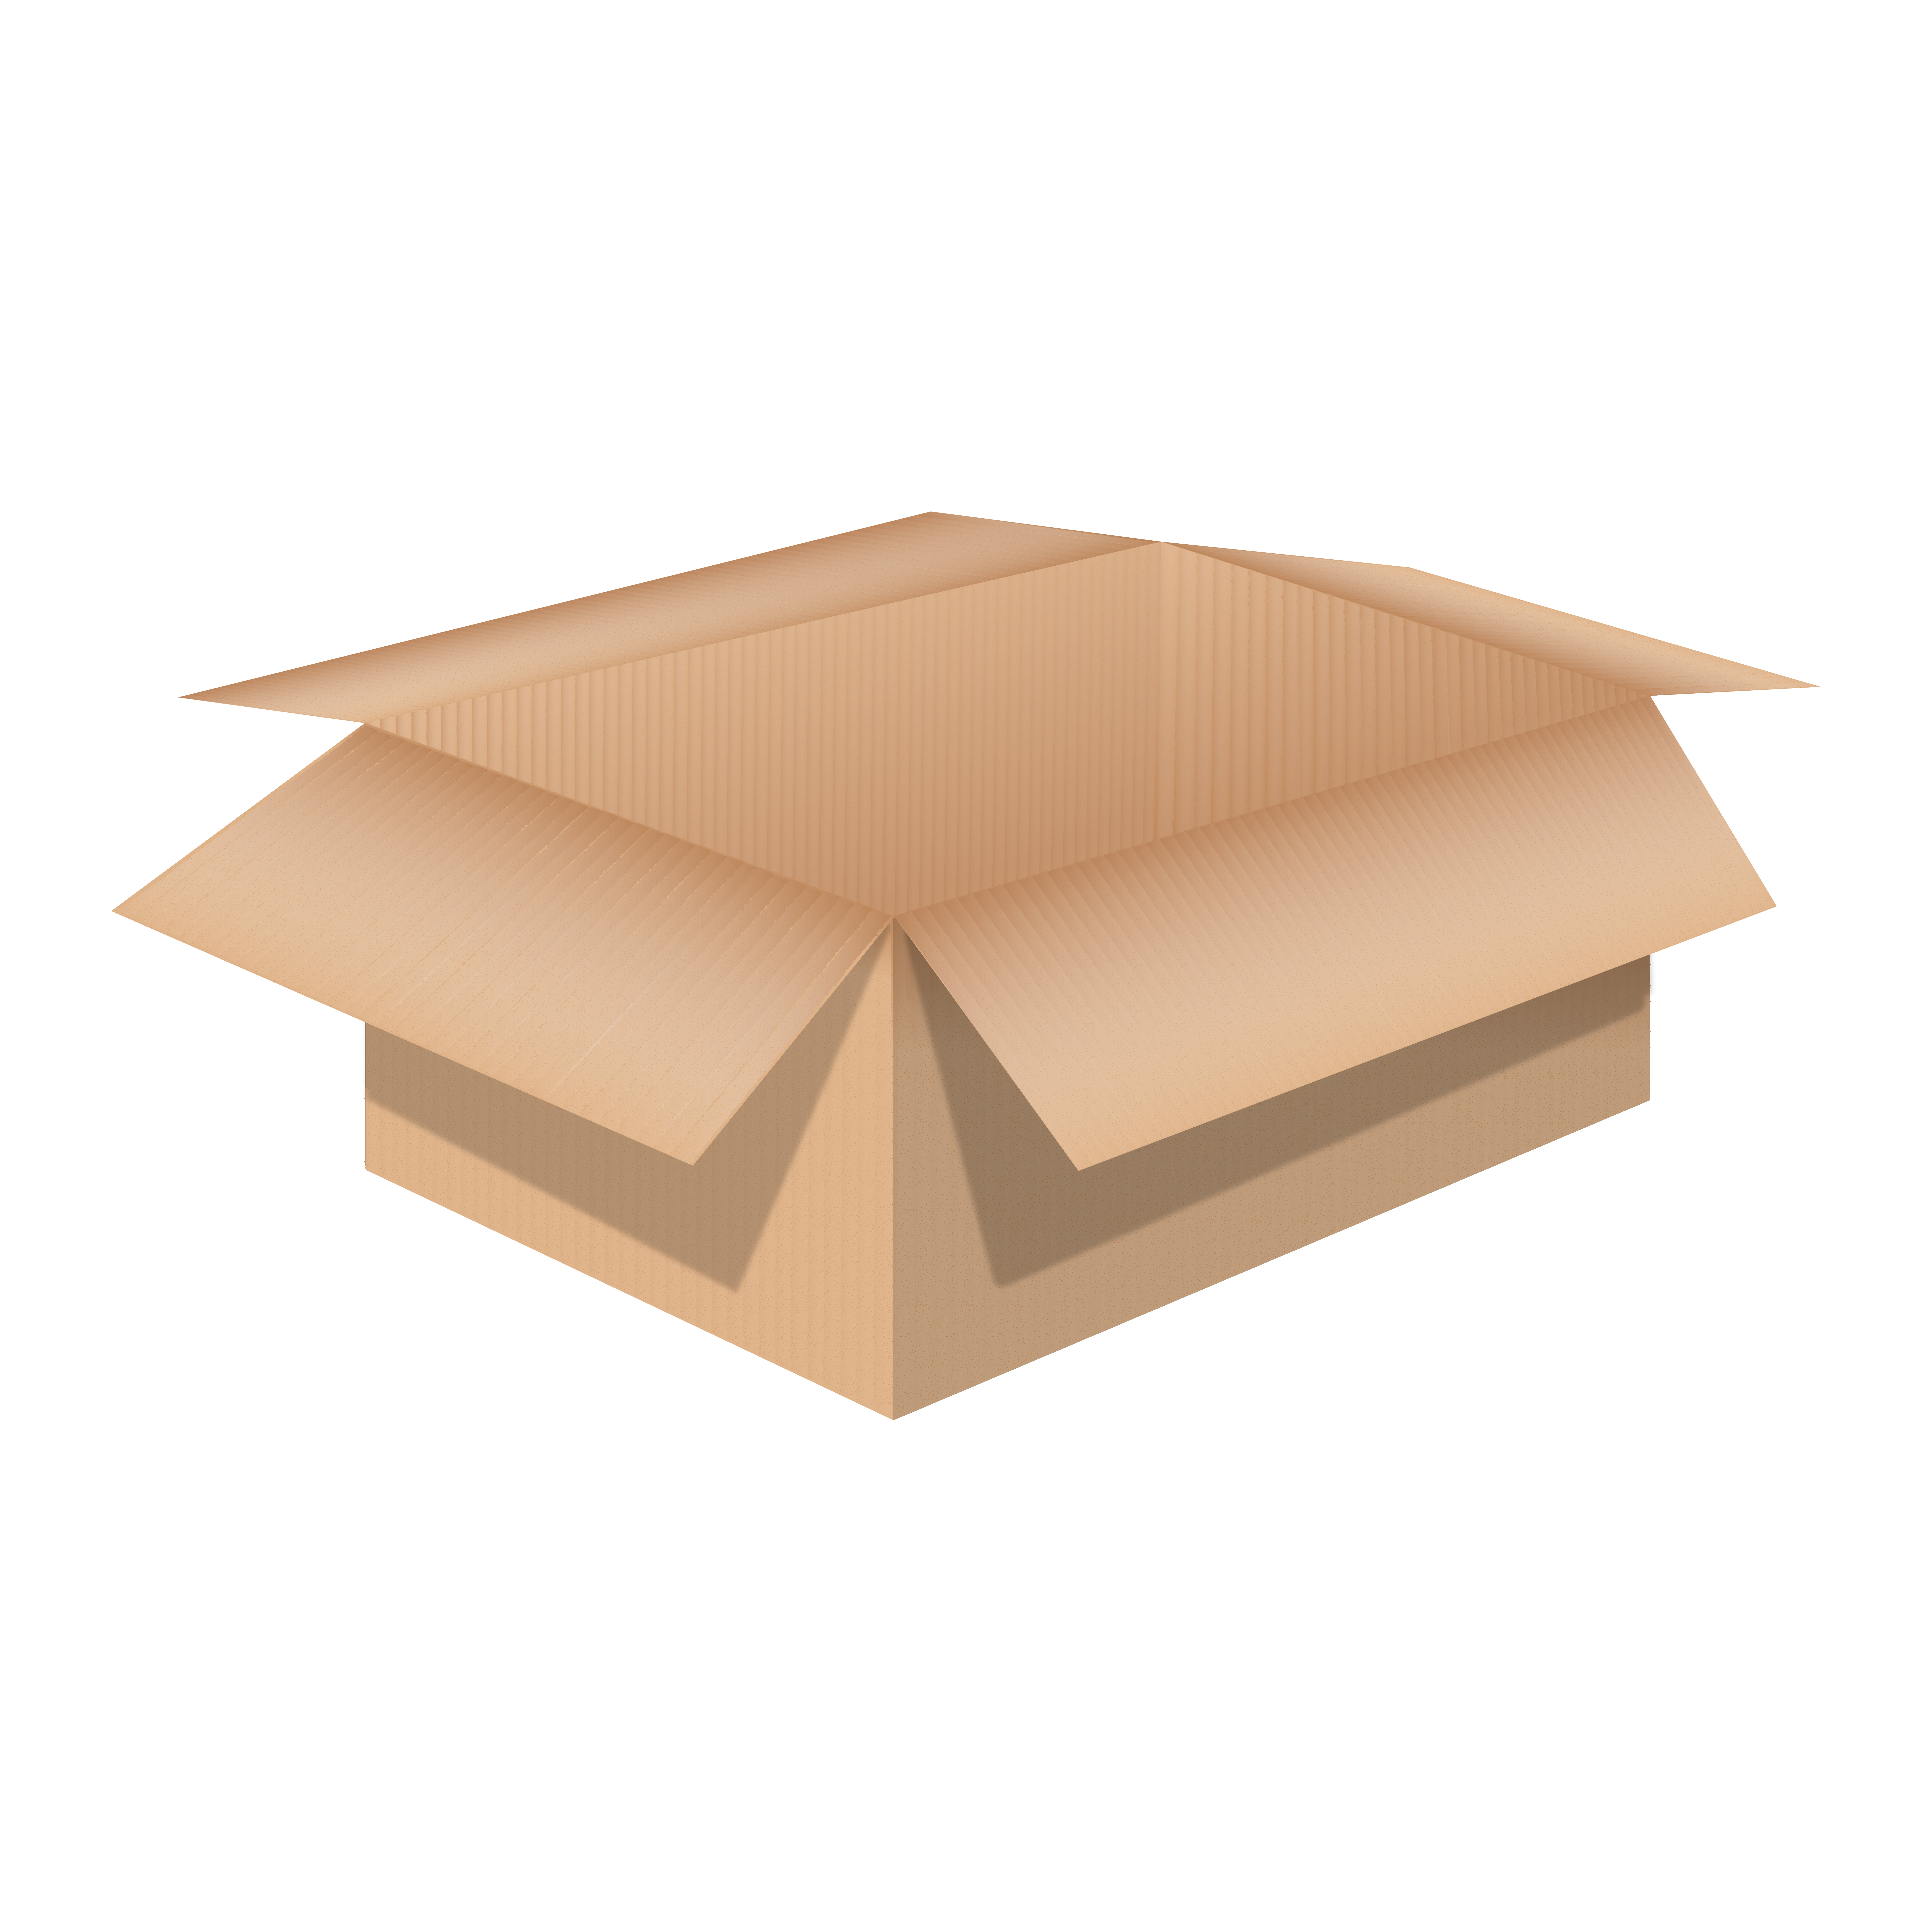 A simple corrugated cardboard box for shipping wine.